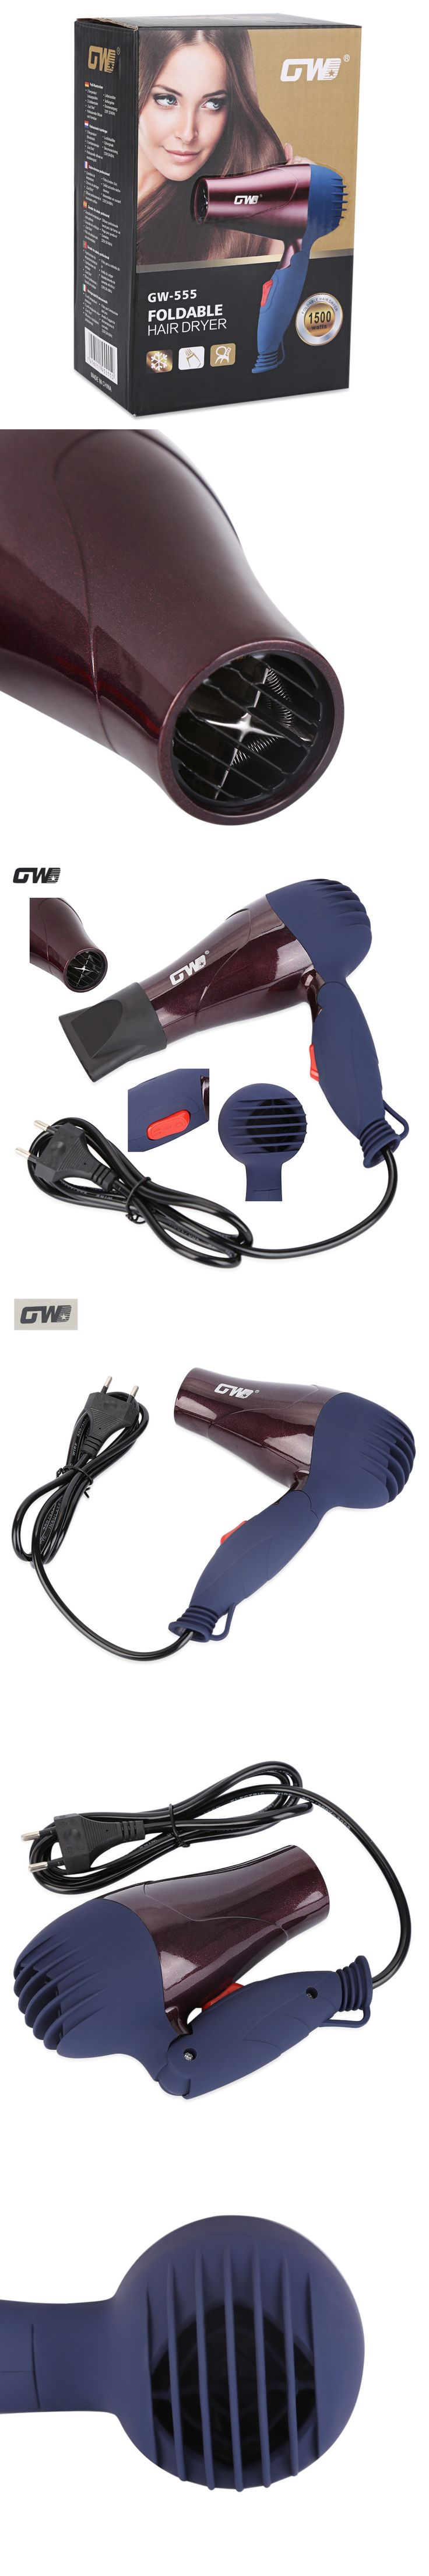 GW Foldable Hair Dryer Portable Travel Home Use Compact Ceramic Hair Blower Styling Tools High Quality Electric Hairdryer